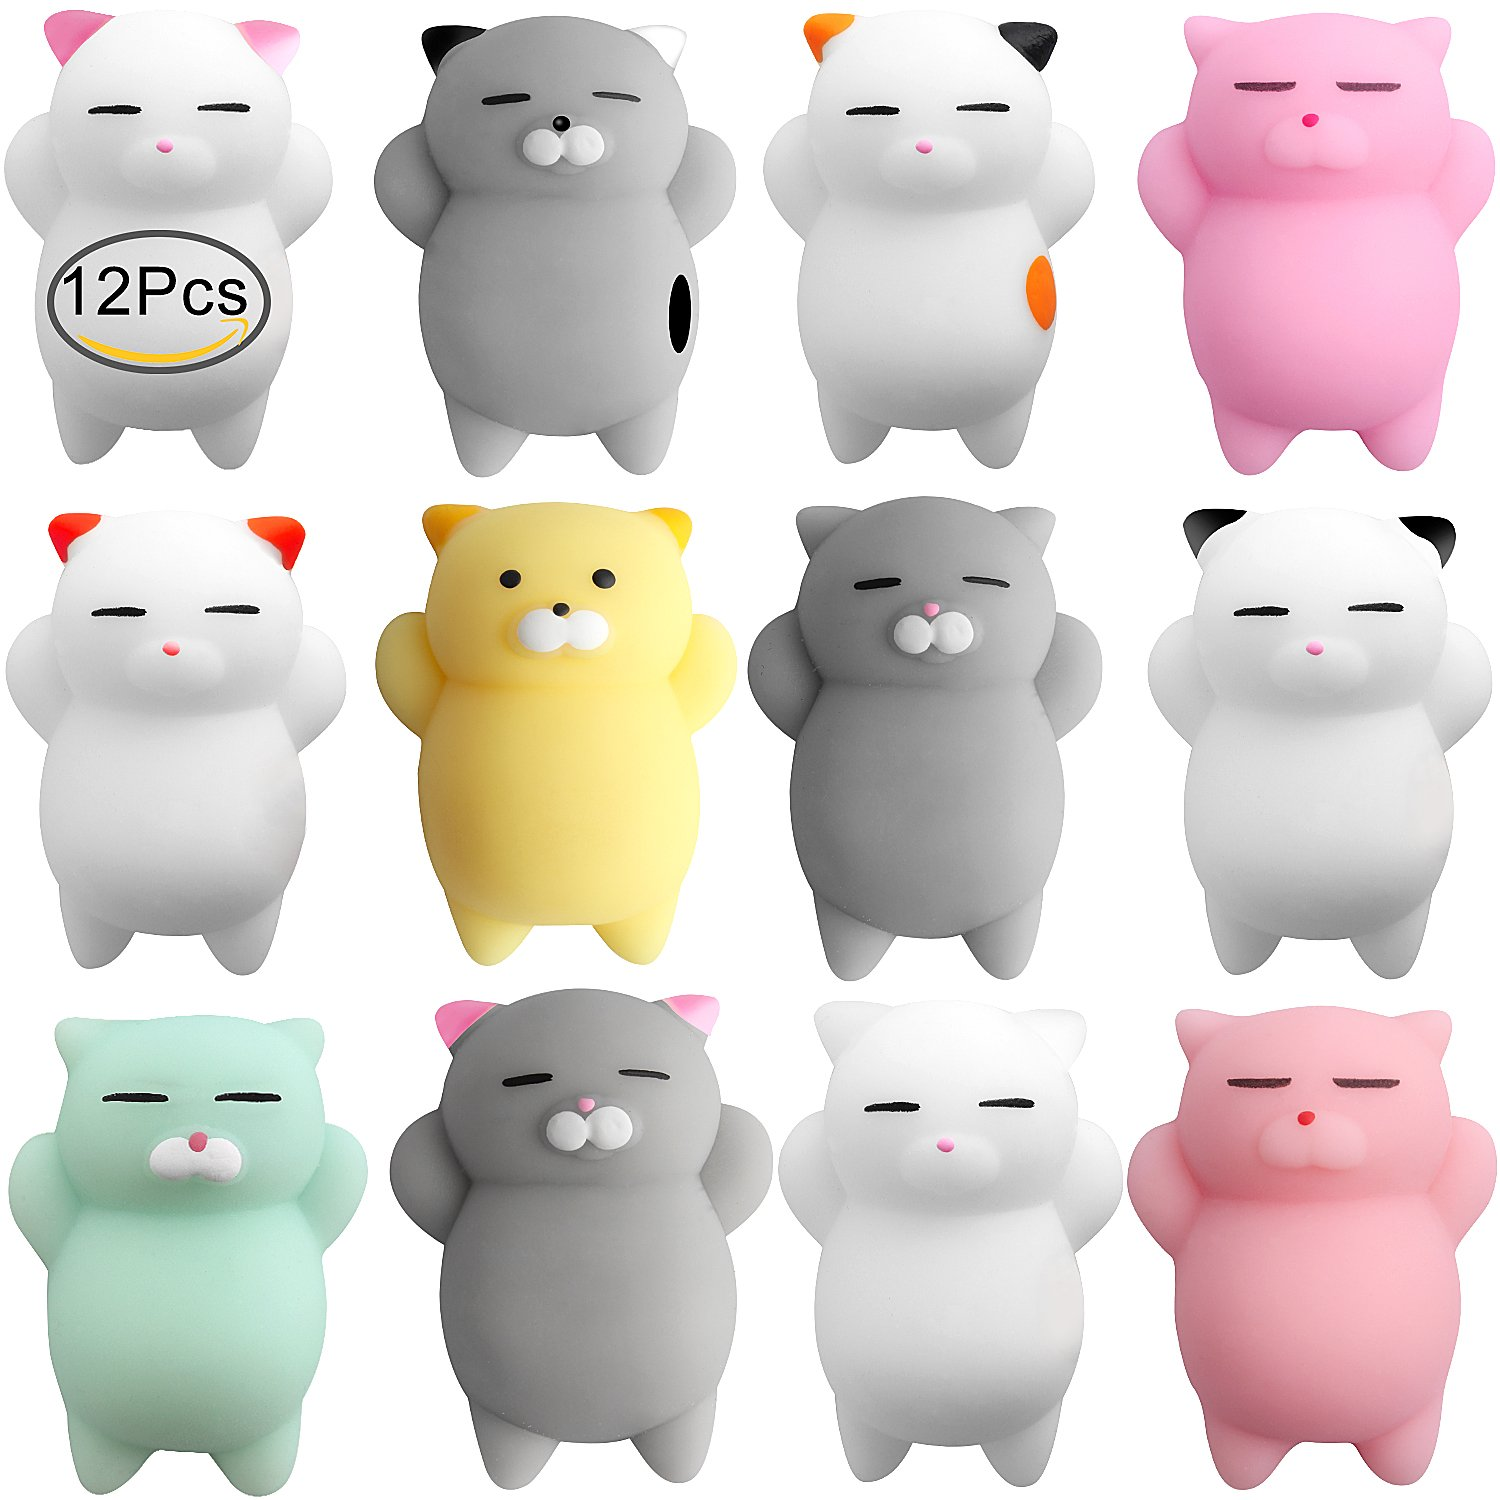 Mochi Stress Cat Toys, Outee 12 Pcs Mini Squishies Mochi Animal Cat Squishy Mochi Squishy Stress Relief Animals Squihsy Squeeze Stress Cat Toys Mochi Squeeze Squishies